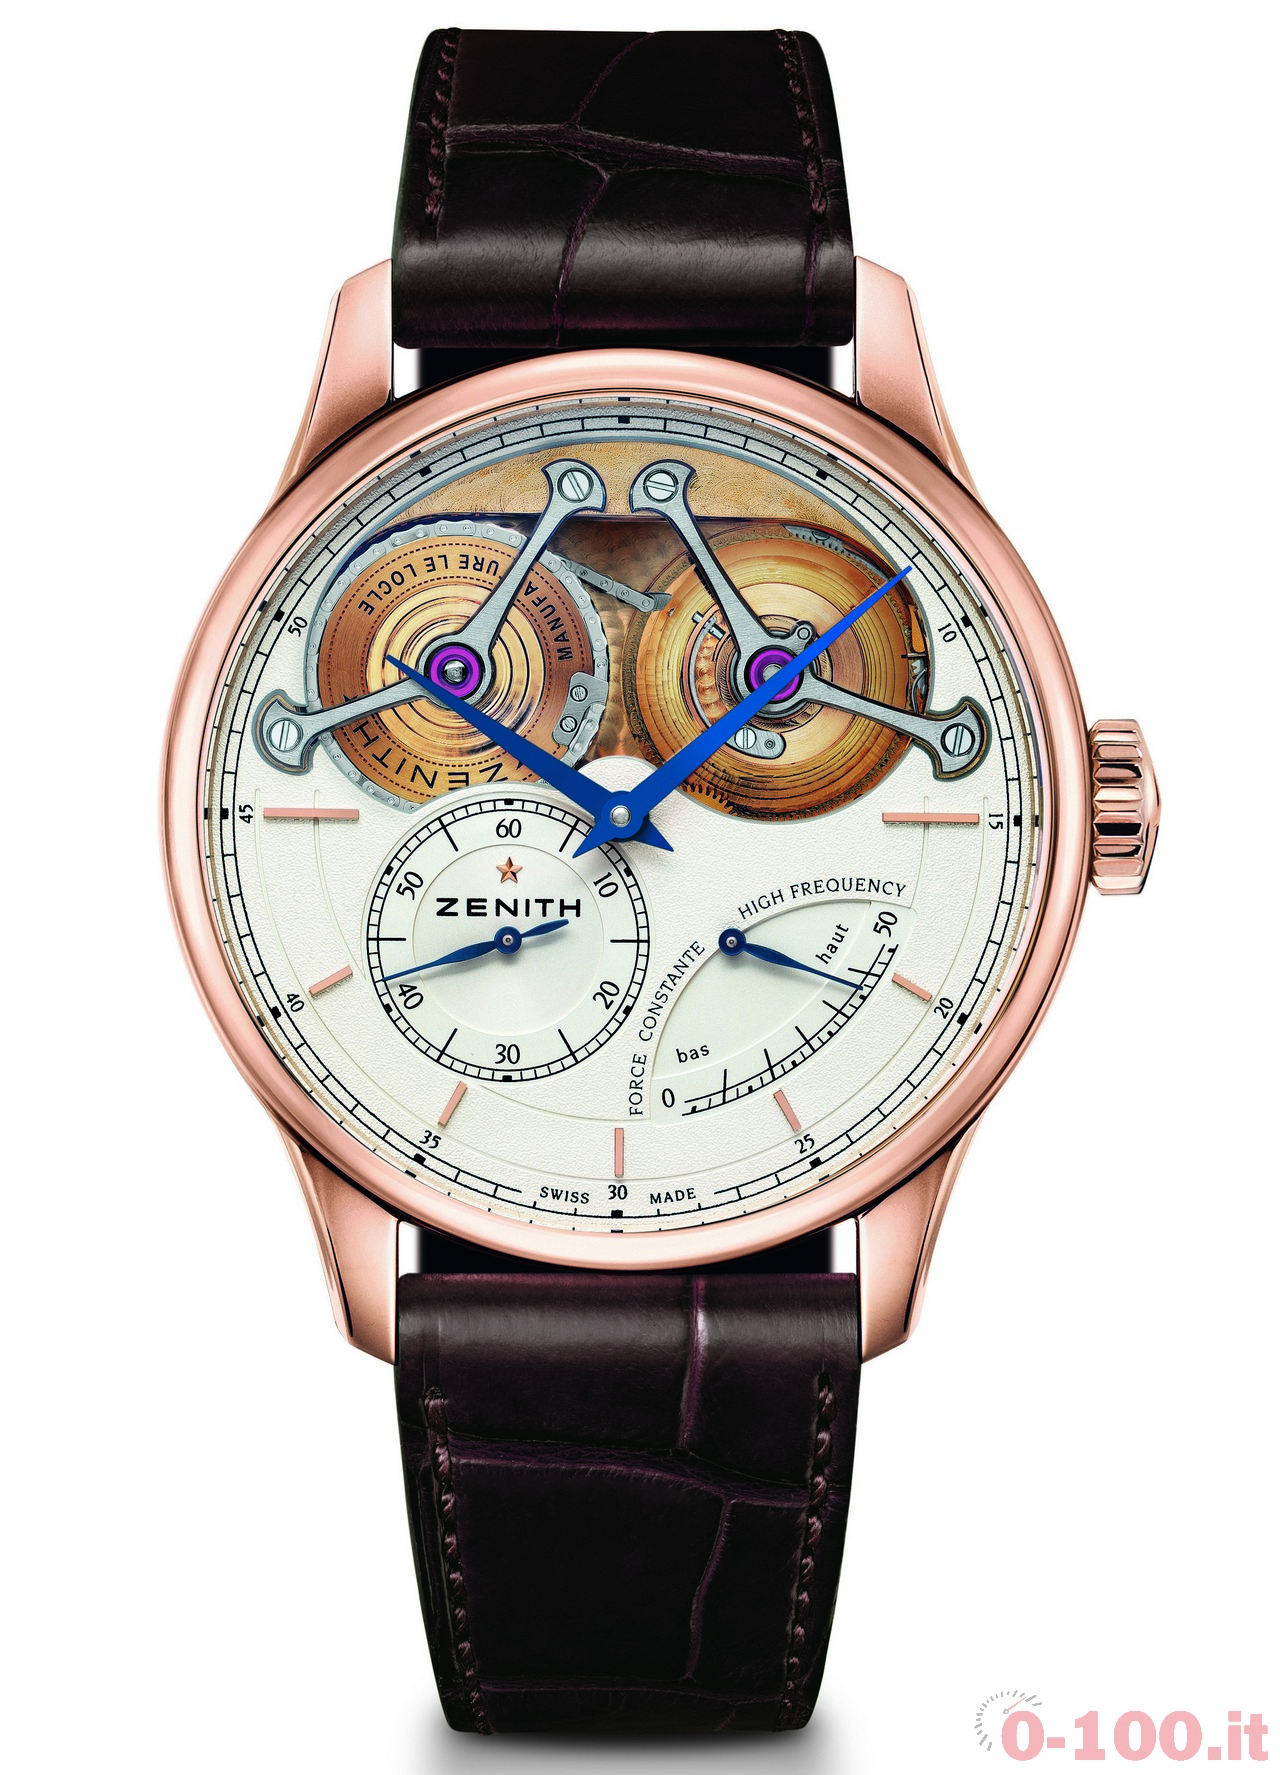 Zenith Academy Georges Favre-Jacot Limited Edition-0-100_1